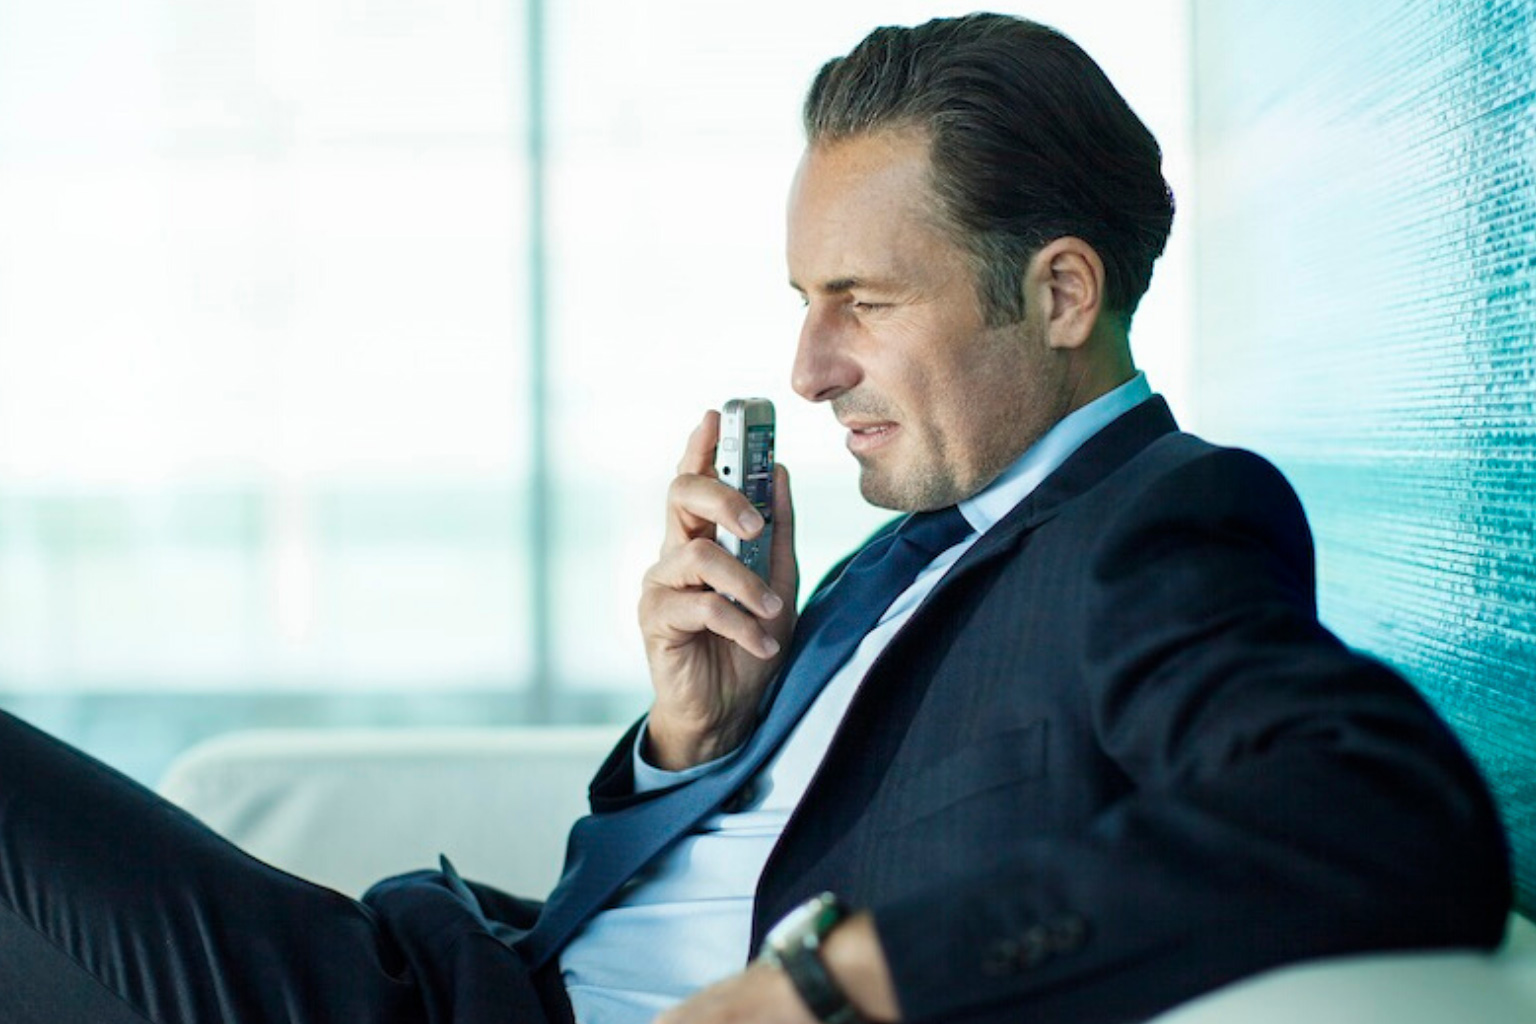 Business man using dictaphone